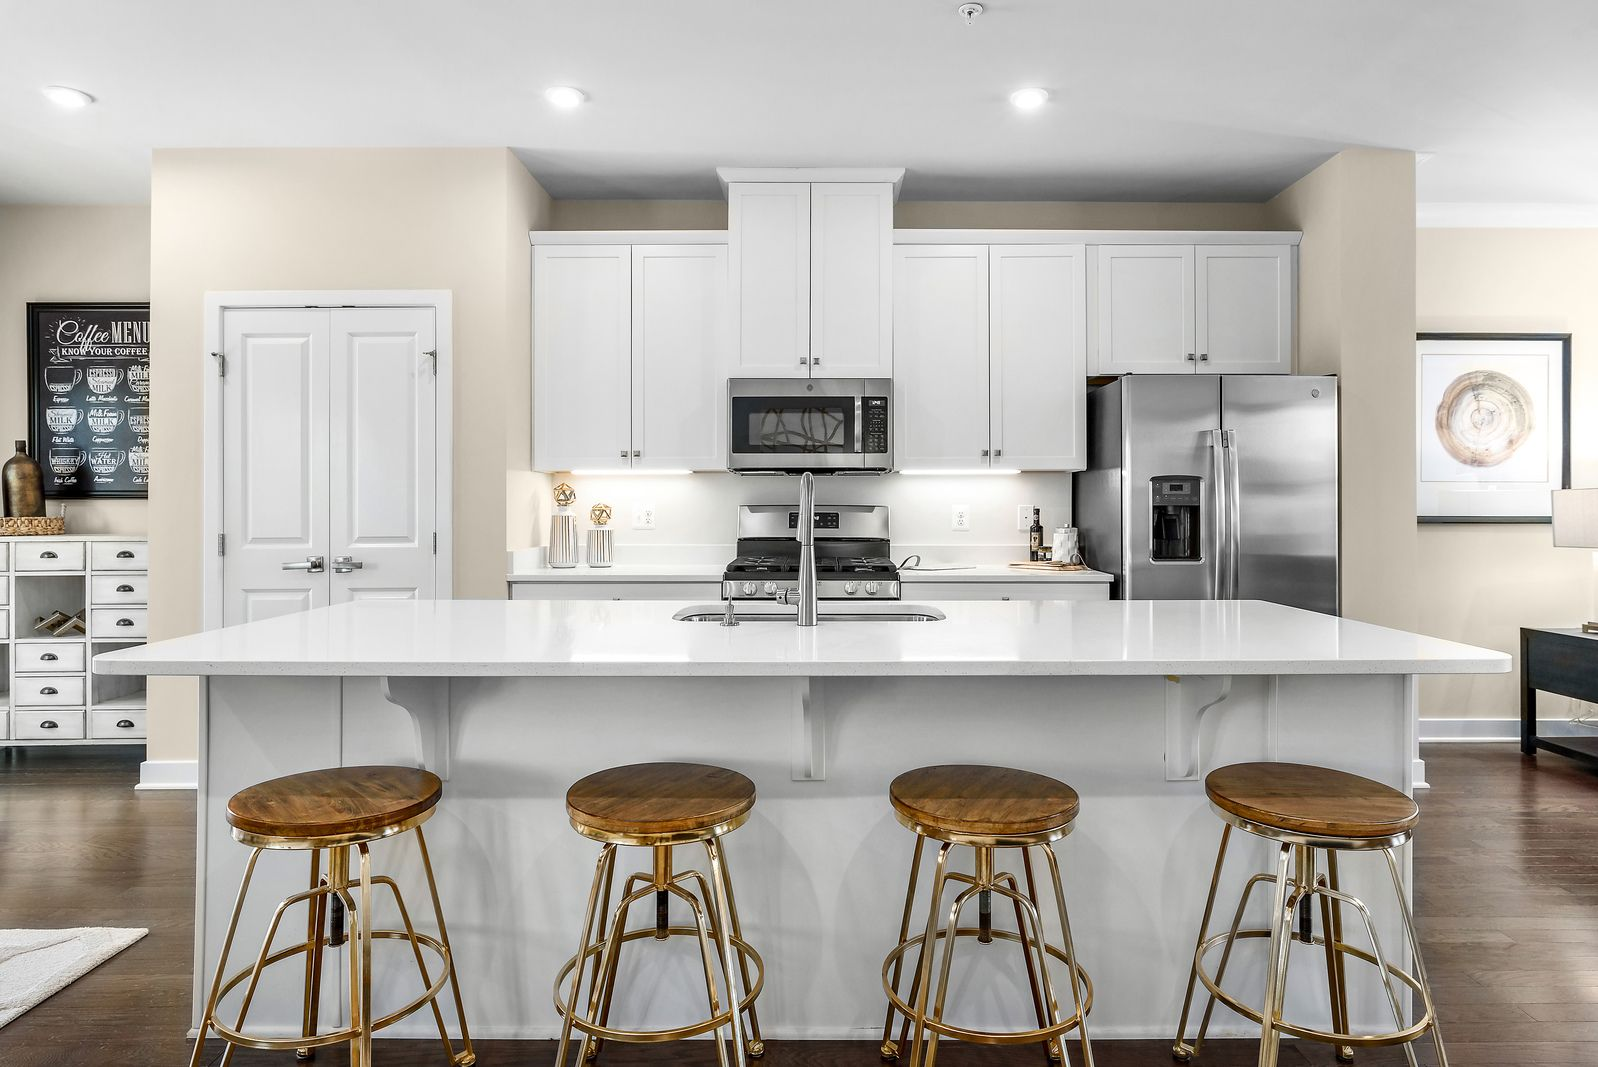 Kitchen featured in the Strauss By Ryan Homes in Baltimore, MD